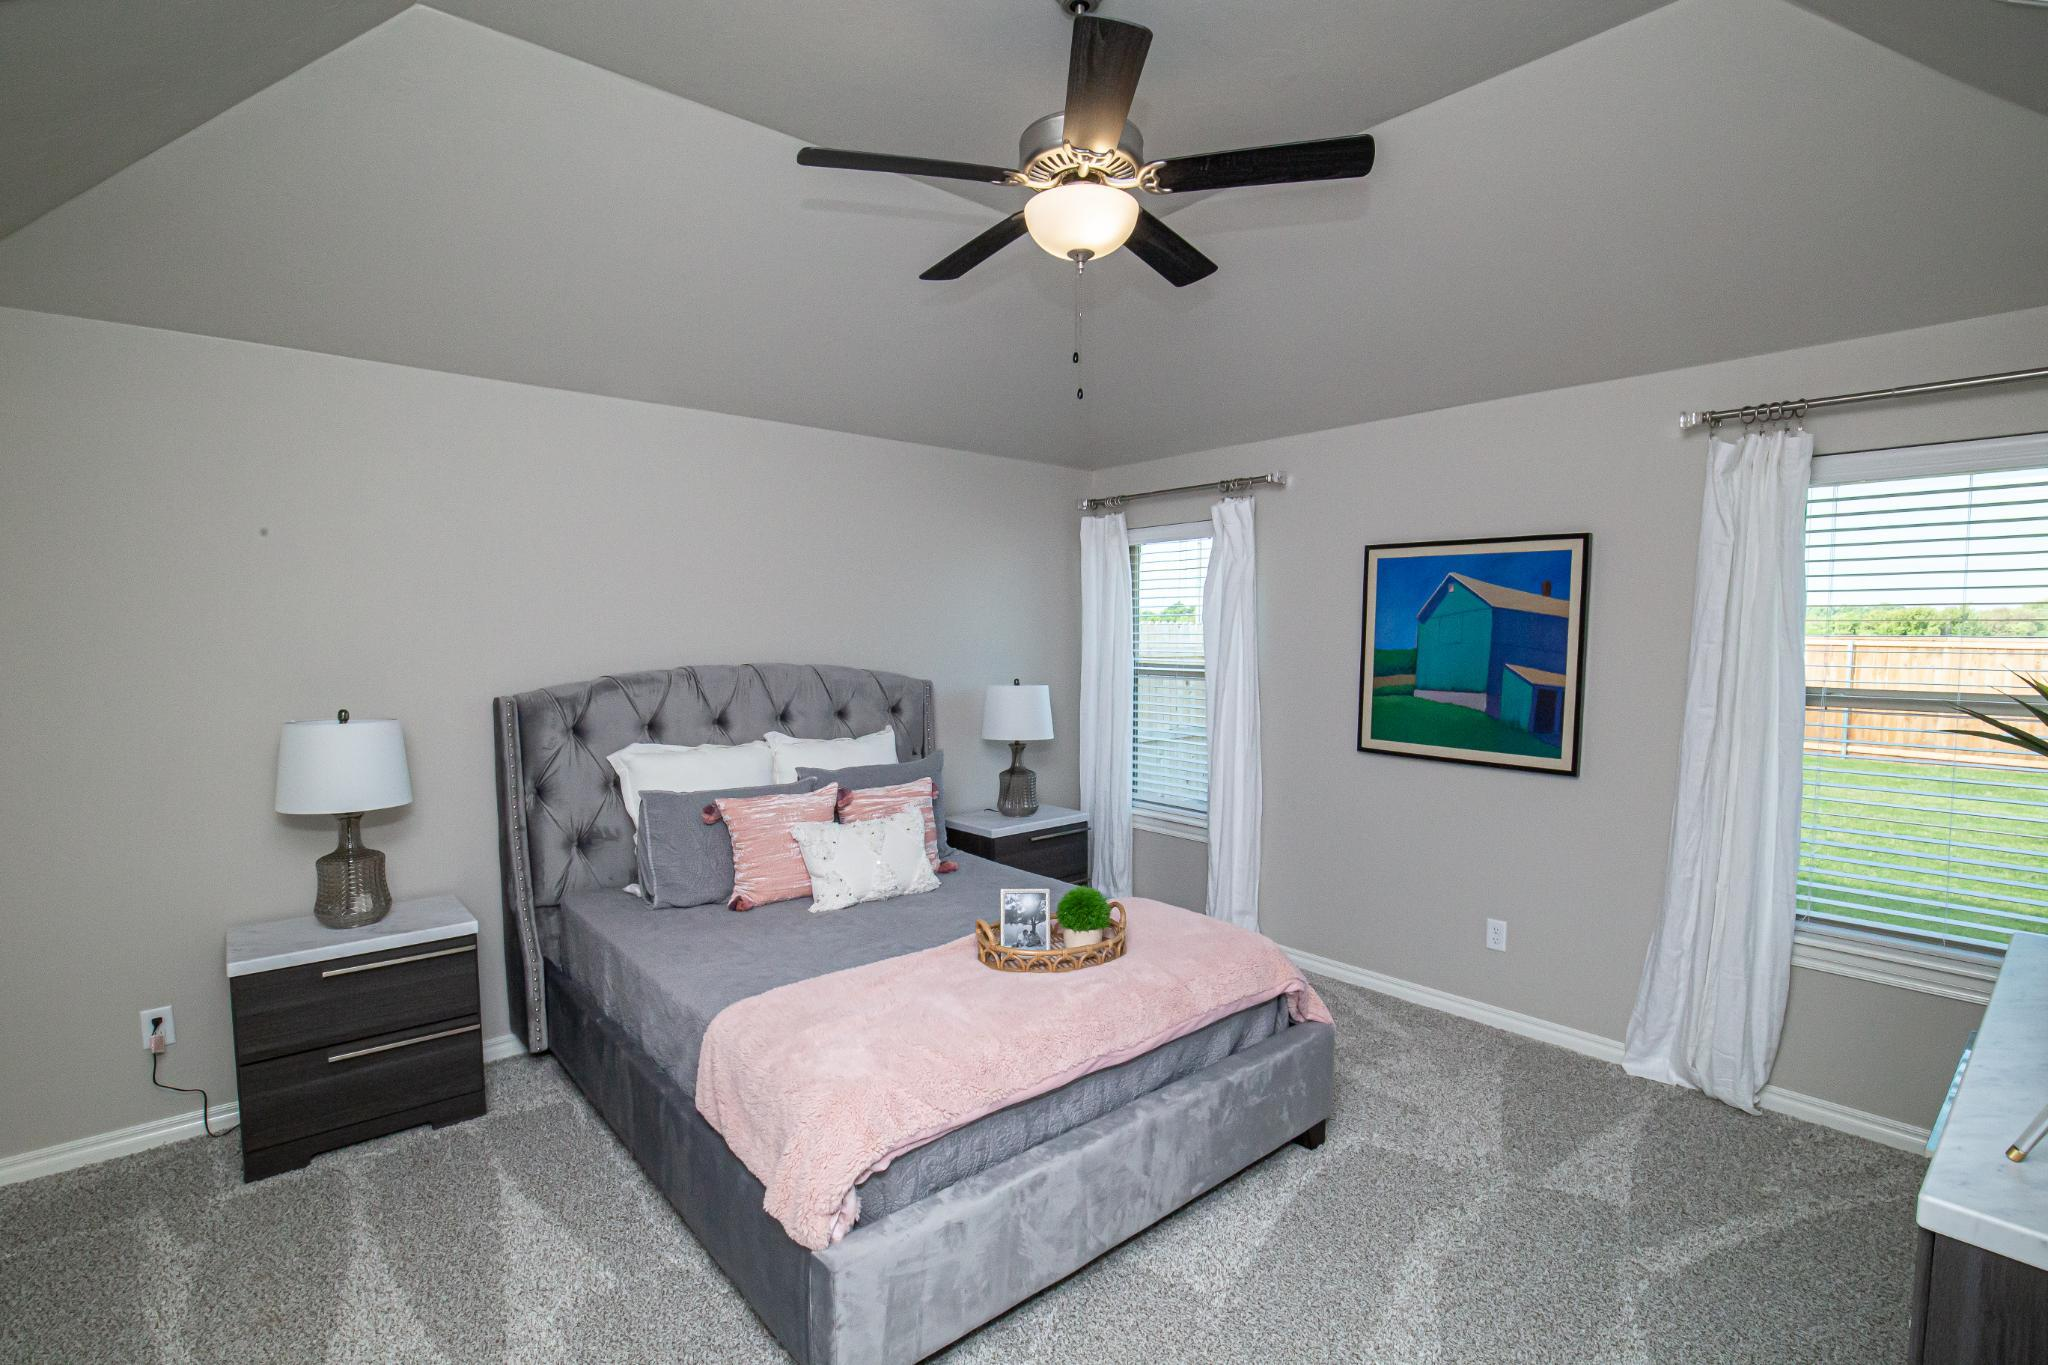 Bedroom featured in the Kamber By Homes By Taber in Oklahoma City, OK